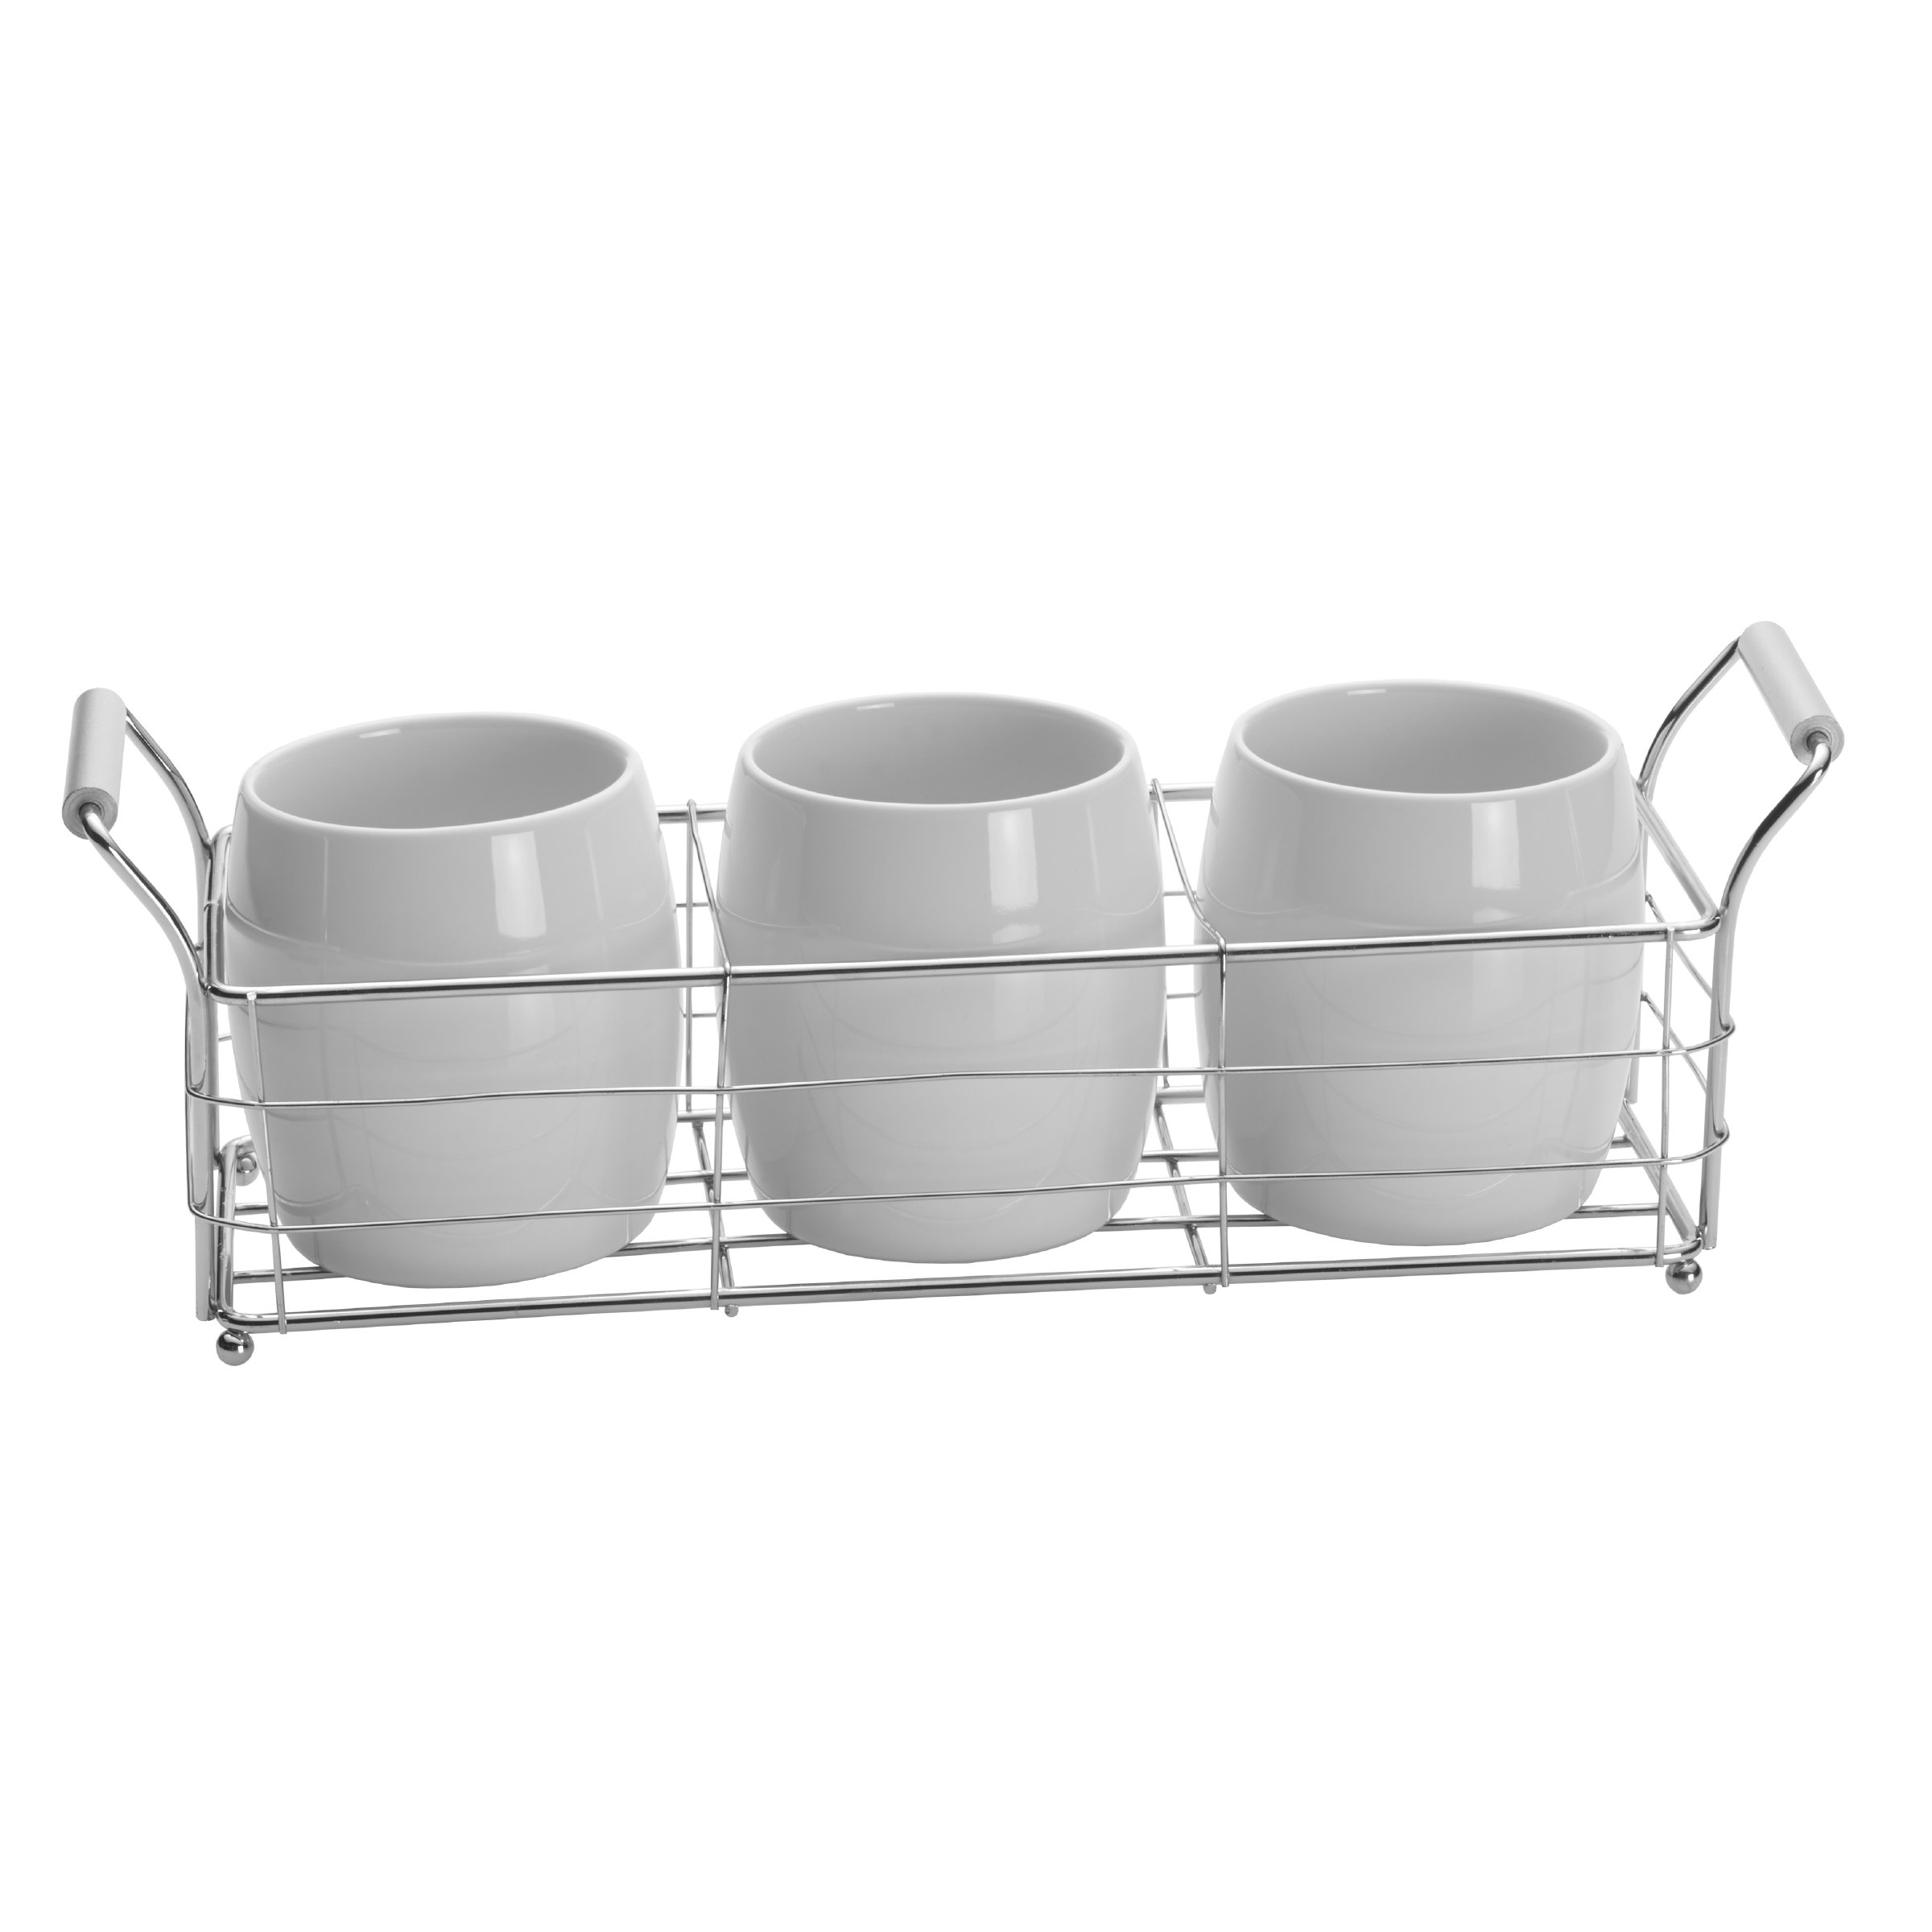 Towle Living Ceramic Wire Flatware Caddy Set, White by Towle Living (Image #1)